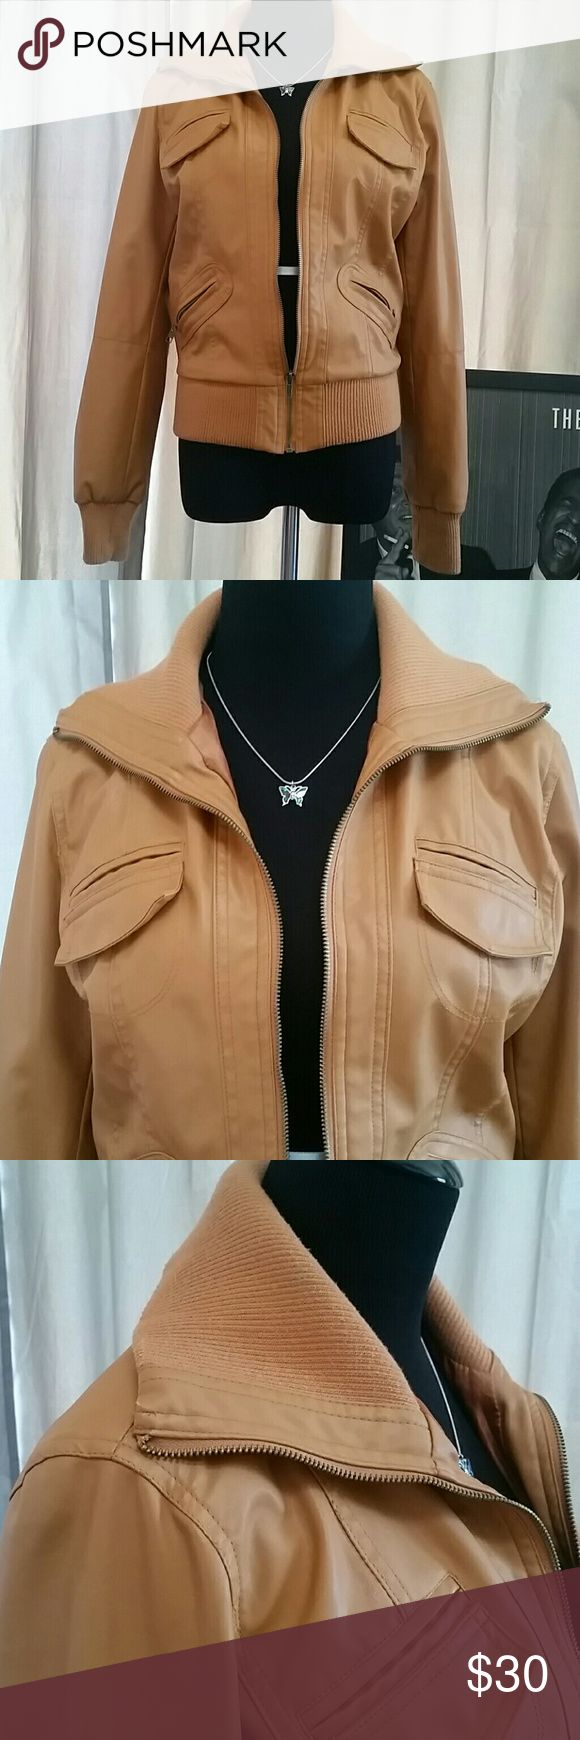 Lovely Camel Leather Jacket. Size L Beautifully constructed Vegan Leather Jacket in a lovely Camel / Caramel / Tan / Light Brown Color.  Two bottom pockets in front are real!   Sexy cheetah print inner lining in near perfect condition, just some worn threading in the very center.   Bundle & save! 20% off 3+ items. No offers ever declined! Closet Jackets & Coats